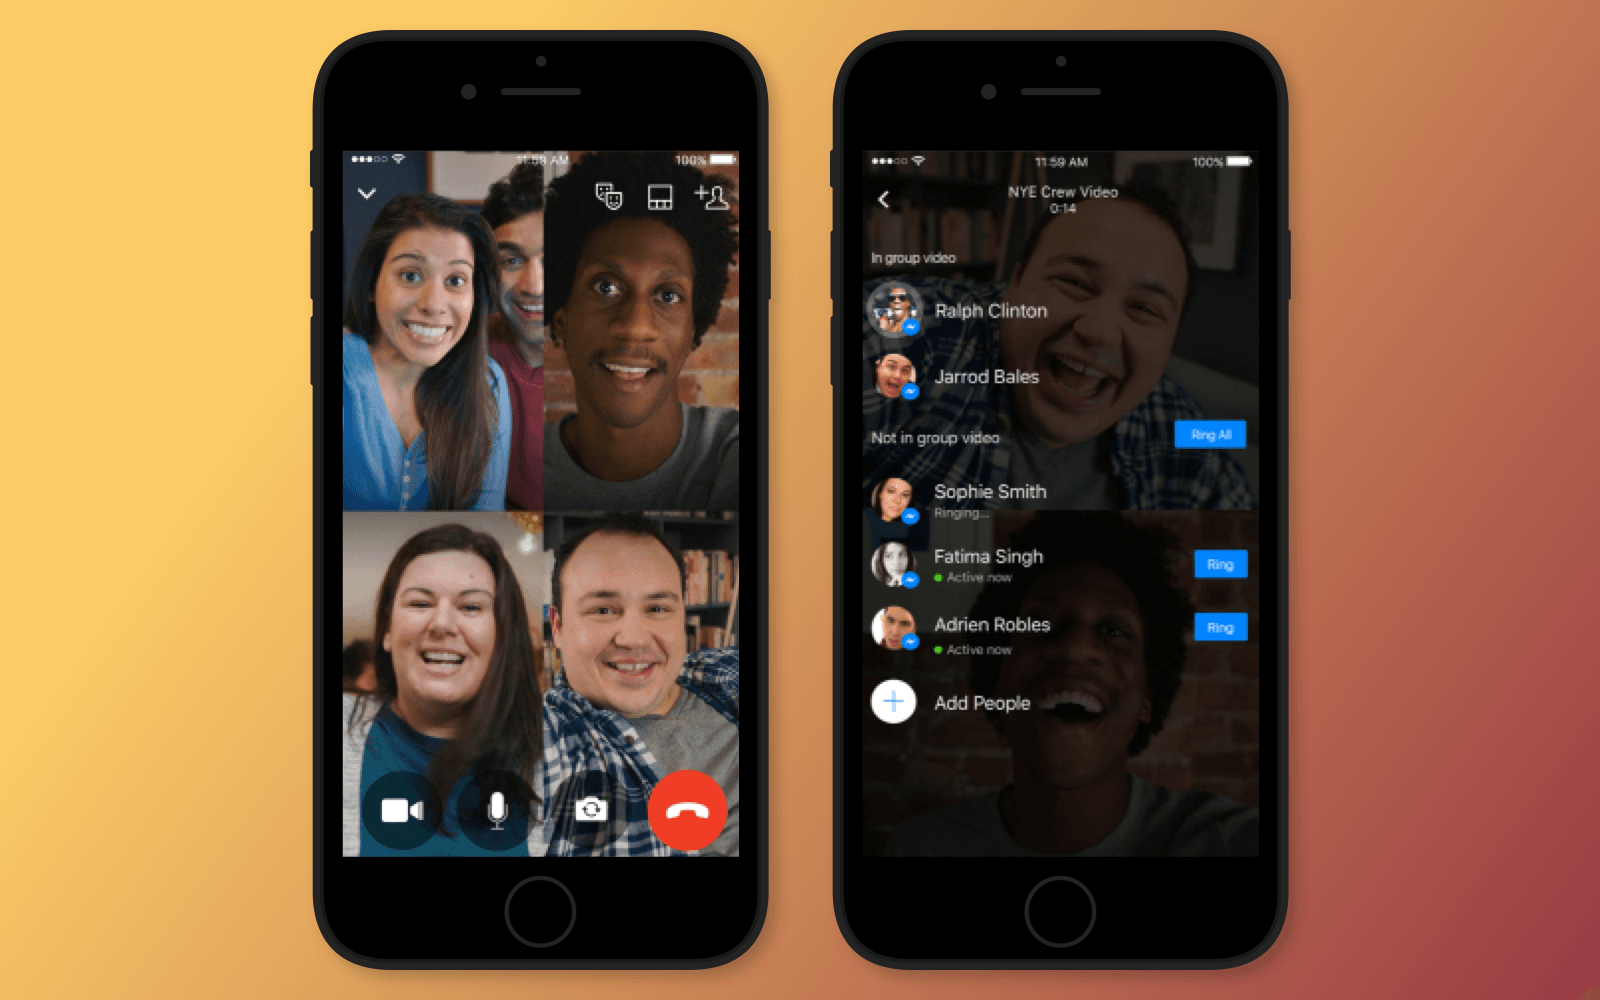 Example of group video calls on Facebook Messenger